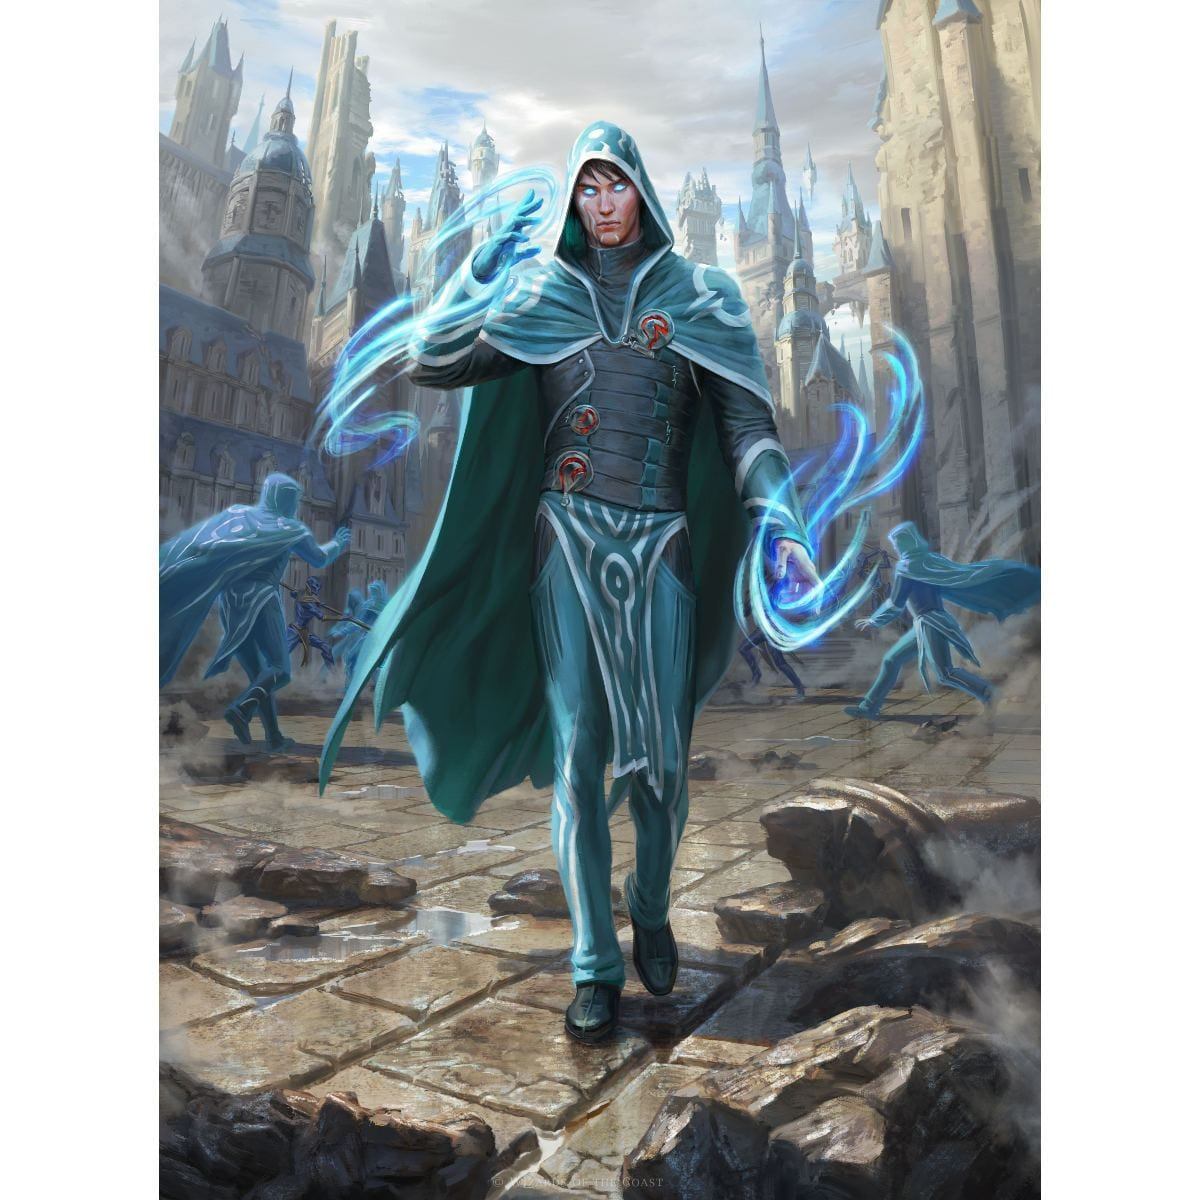 Jace, Wielder of Mysteries Print - Print - Original Magic Art - Accessories for Magic the Gathering and other card games